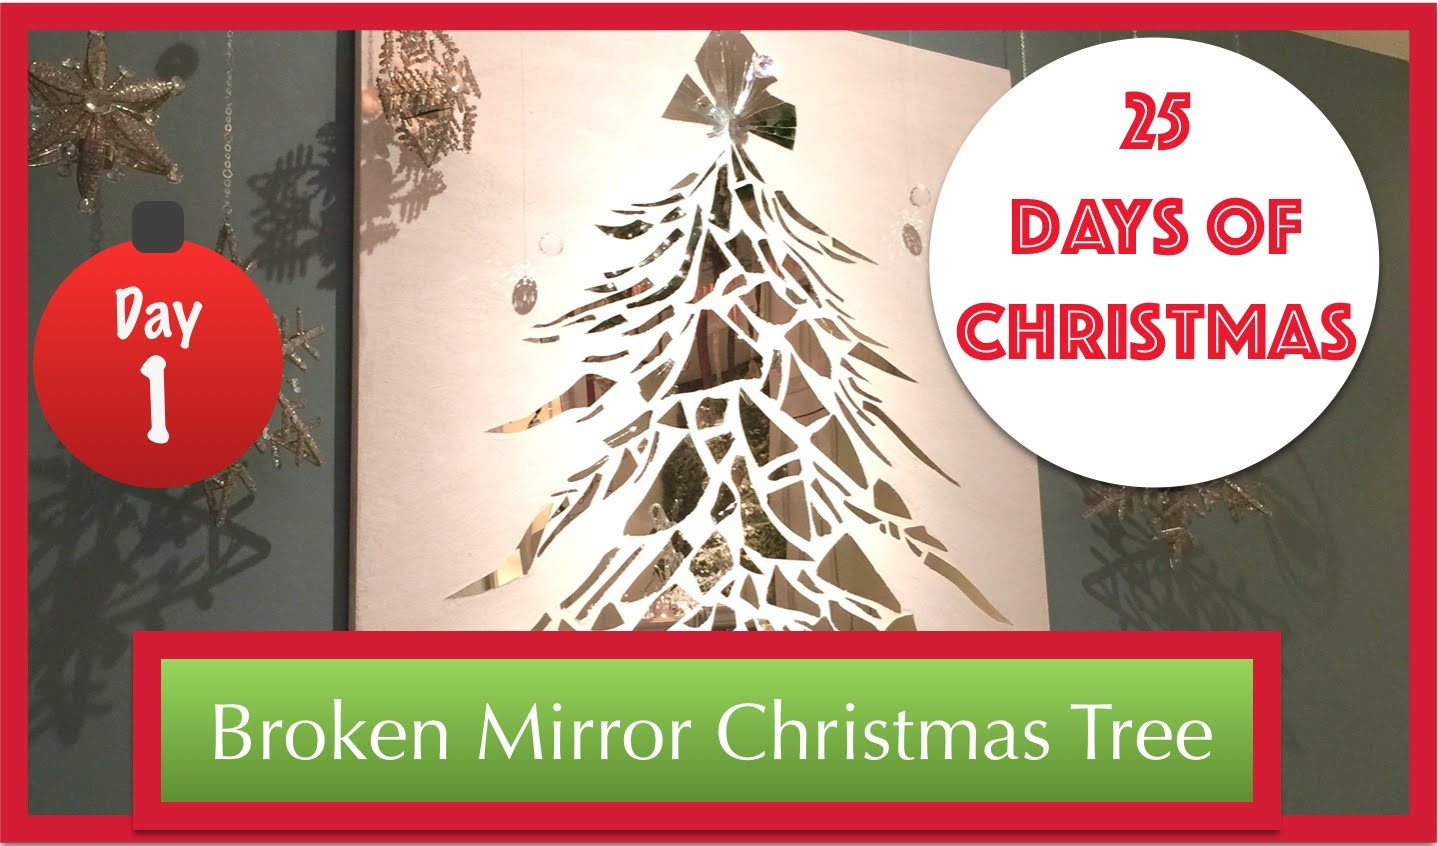 Broken Mirror Christmas Tree DIY | 1st Day of 25 Days of Christmas 2015